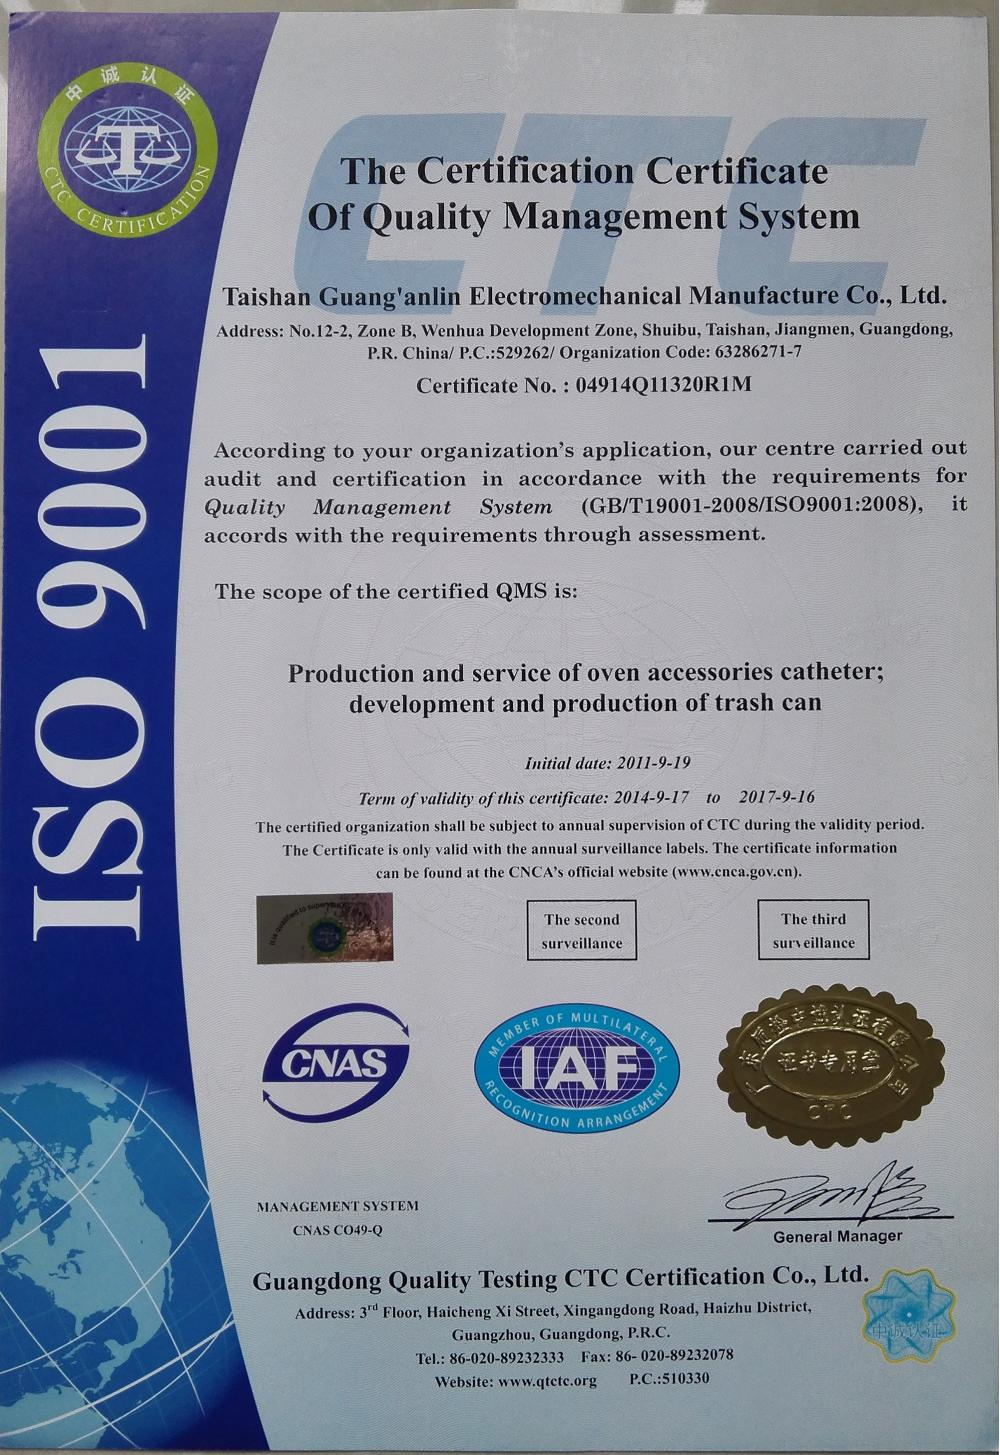 Certificates taishan gal electrical manufacture co ltd iso9001 1betcityfo Choice Image